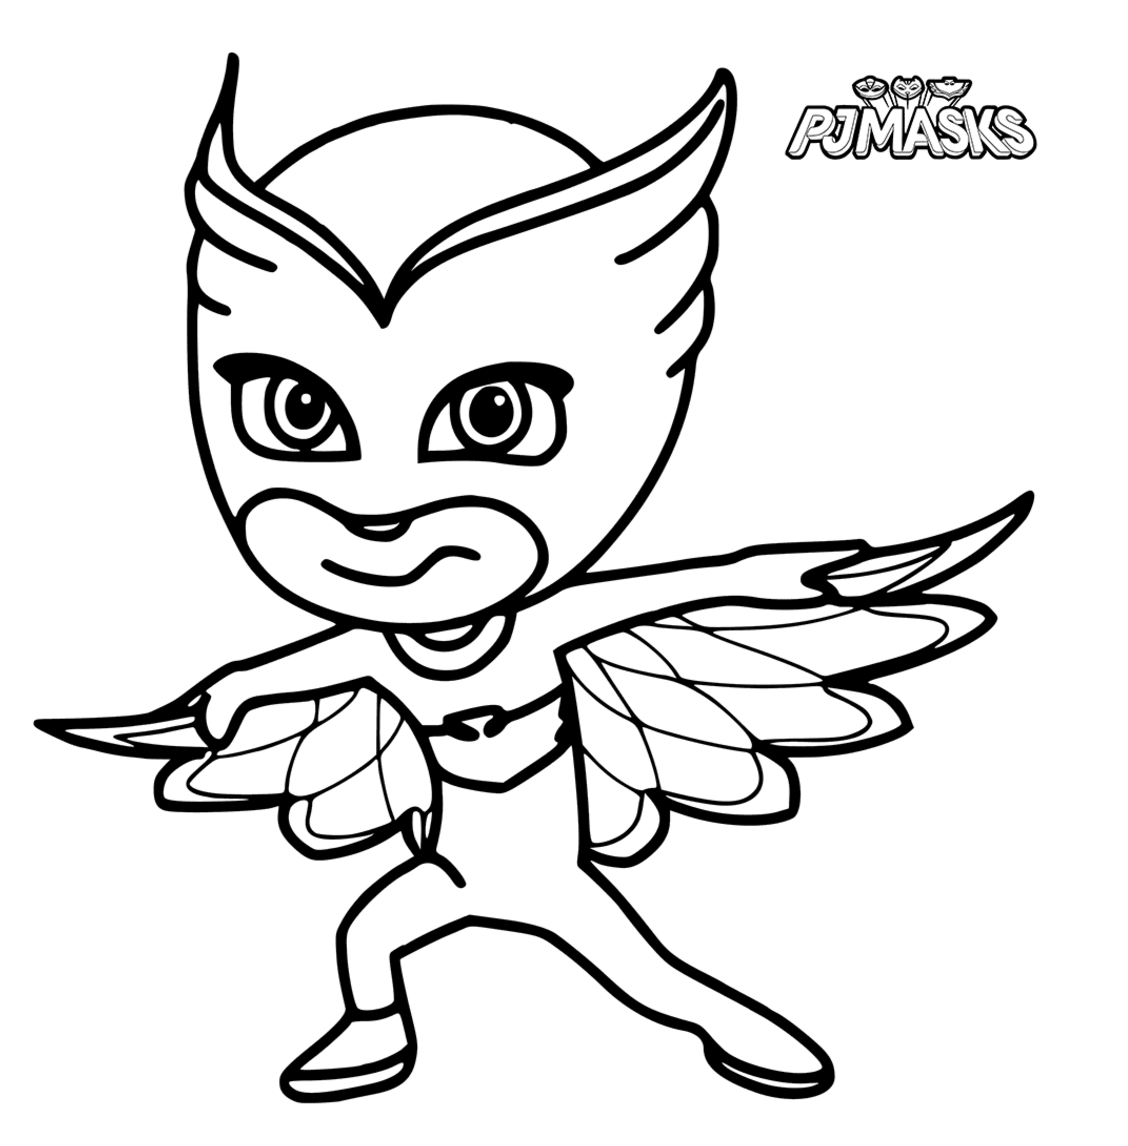 PJ Masks Coloring Pages Best